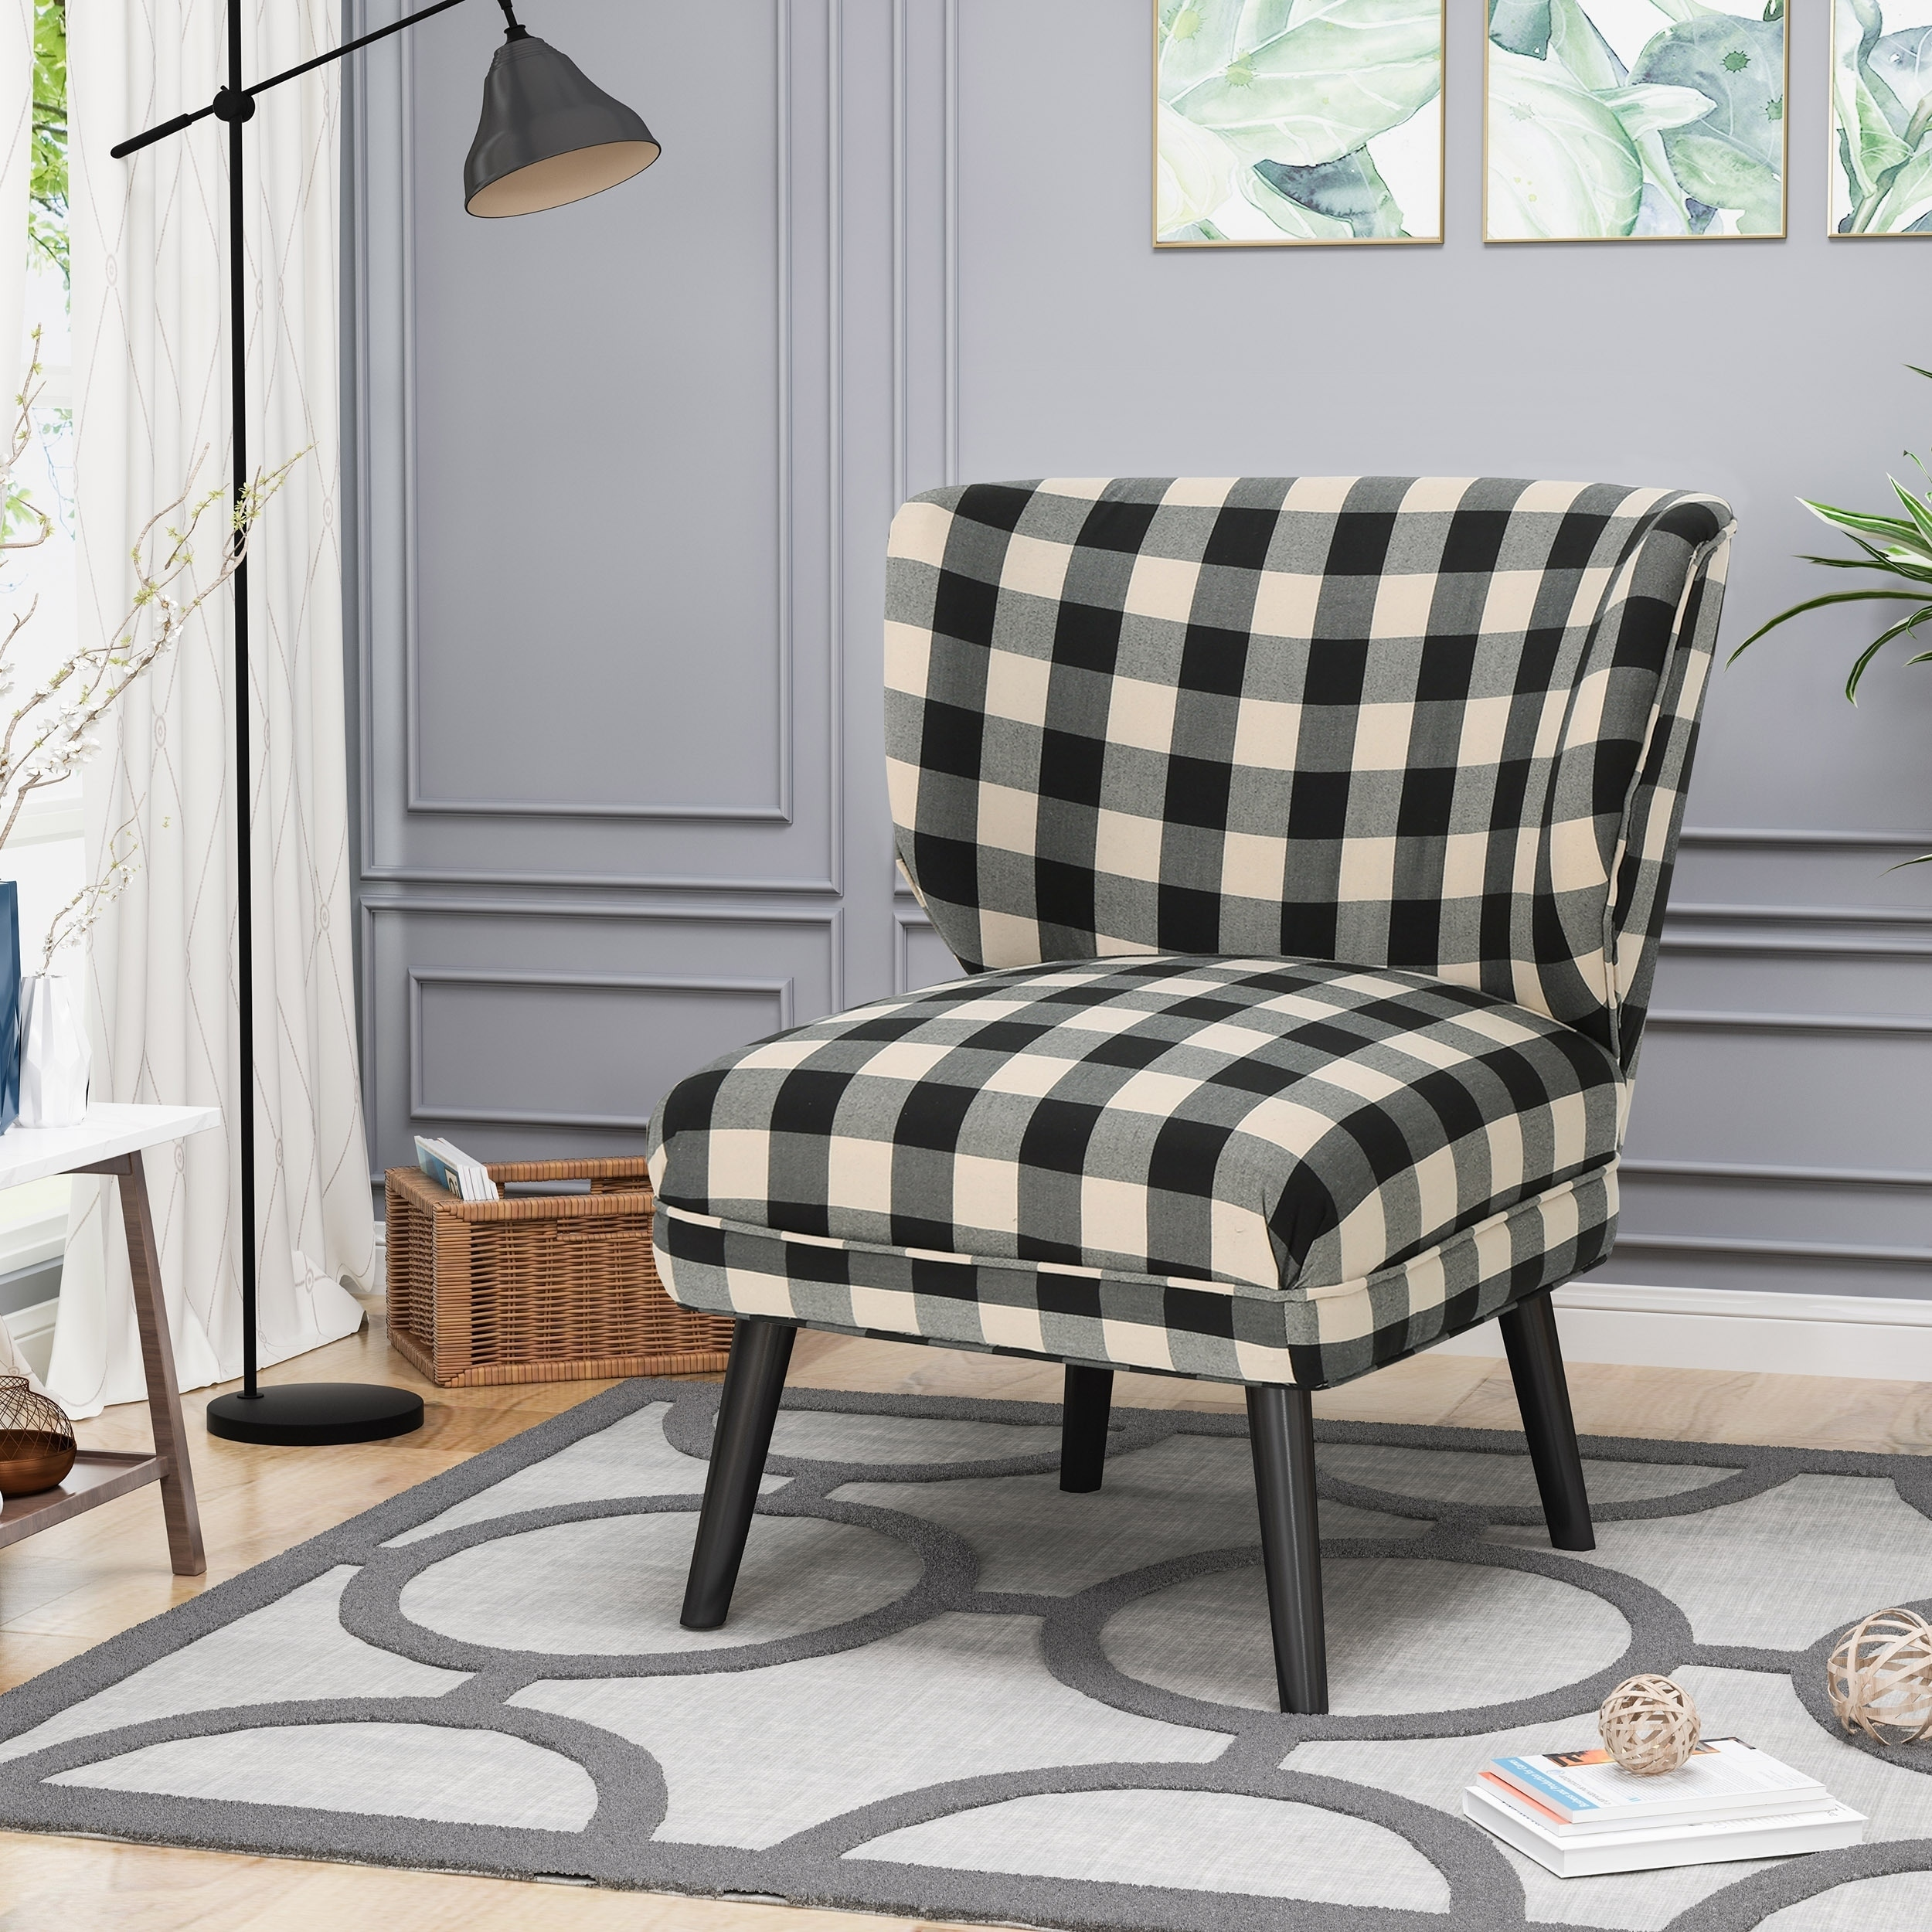 Modern Formal Living Room, Shop Black Friday Deals On Laurier Modern Farmhouse Accent Chair By Chirstopher Knight Home On Sale Overstock 22727913 Print